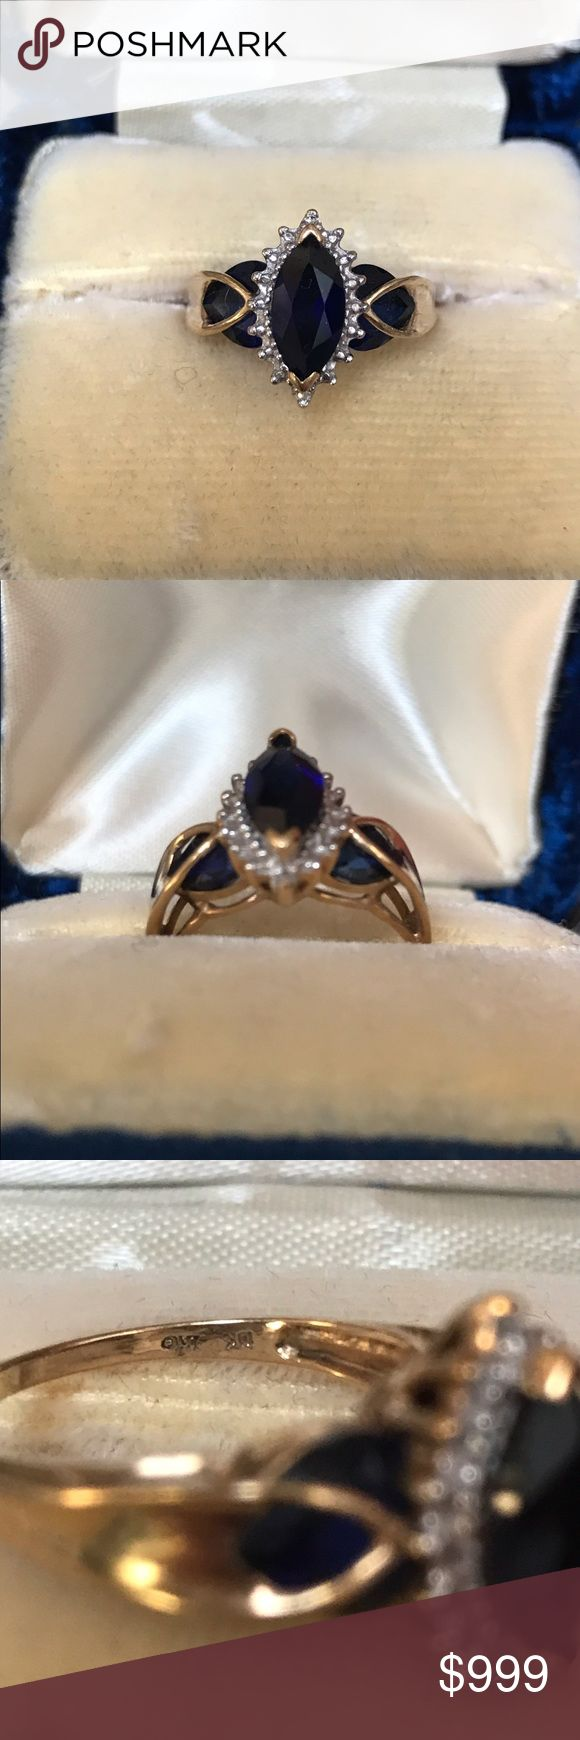 10kt YELLOW GOLD SAPPHIRE AND DIAMOND RING GORGEOUS DIAMOND AND BLUE SAPPHIRE RING SET IN 10kt YELLOW GOLD..ROUND DIAMONDS SURROUNDING MARQUIS SHAPED BLUE SAPPHIRE .. TWO ADDITIONAL SAPPHIRES ON SIDES... SIZE 7. BARELY WORN Jewelry Rings